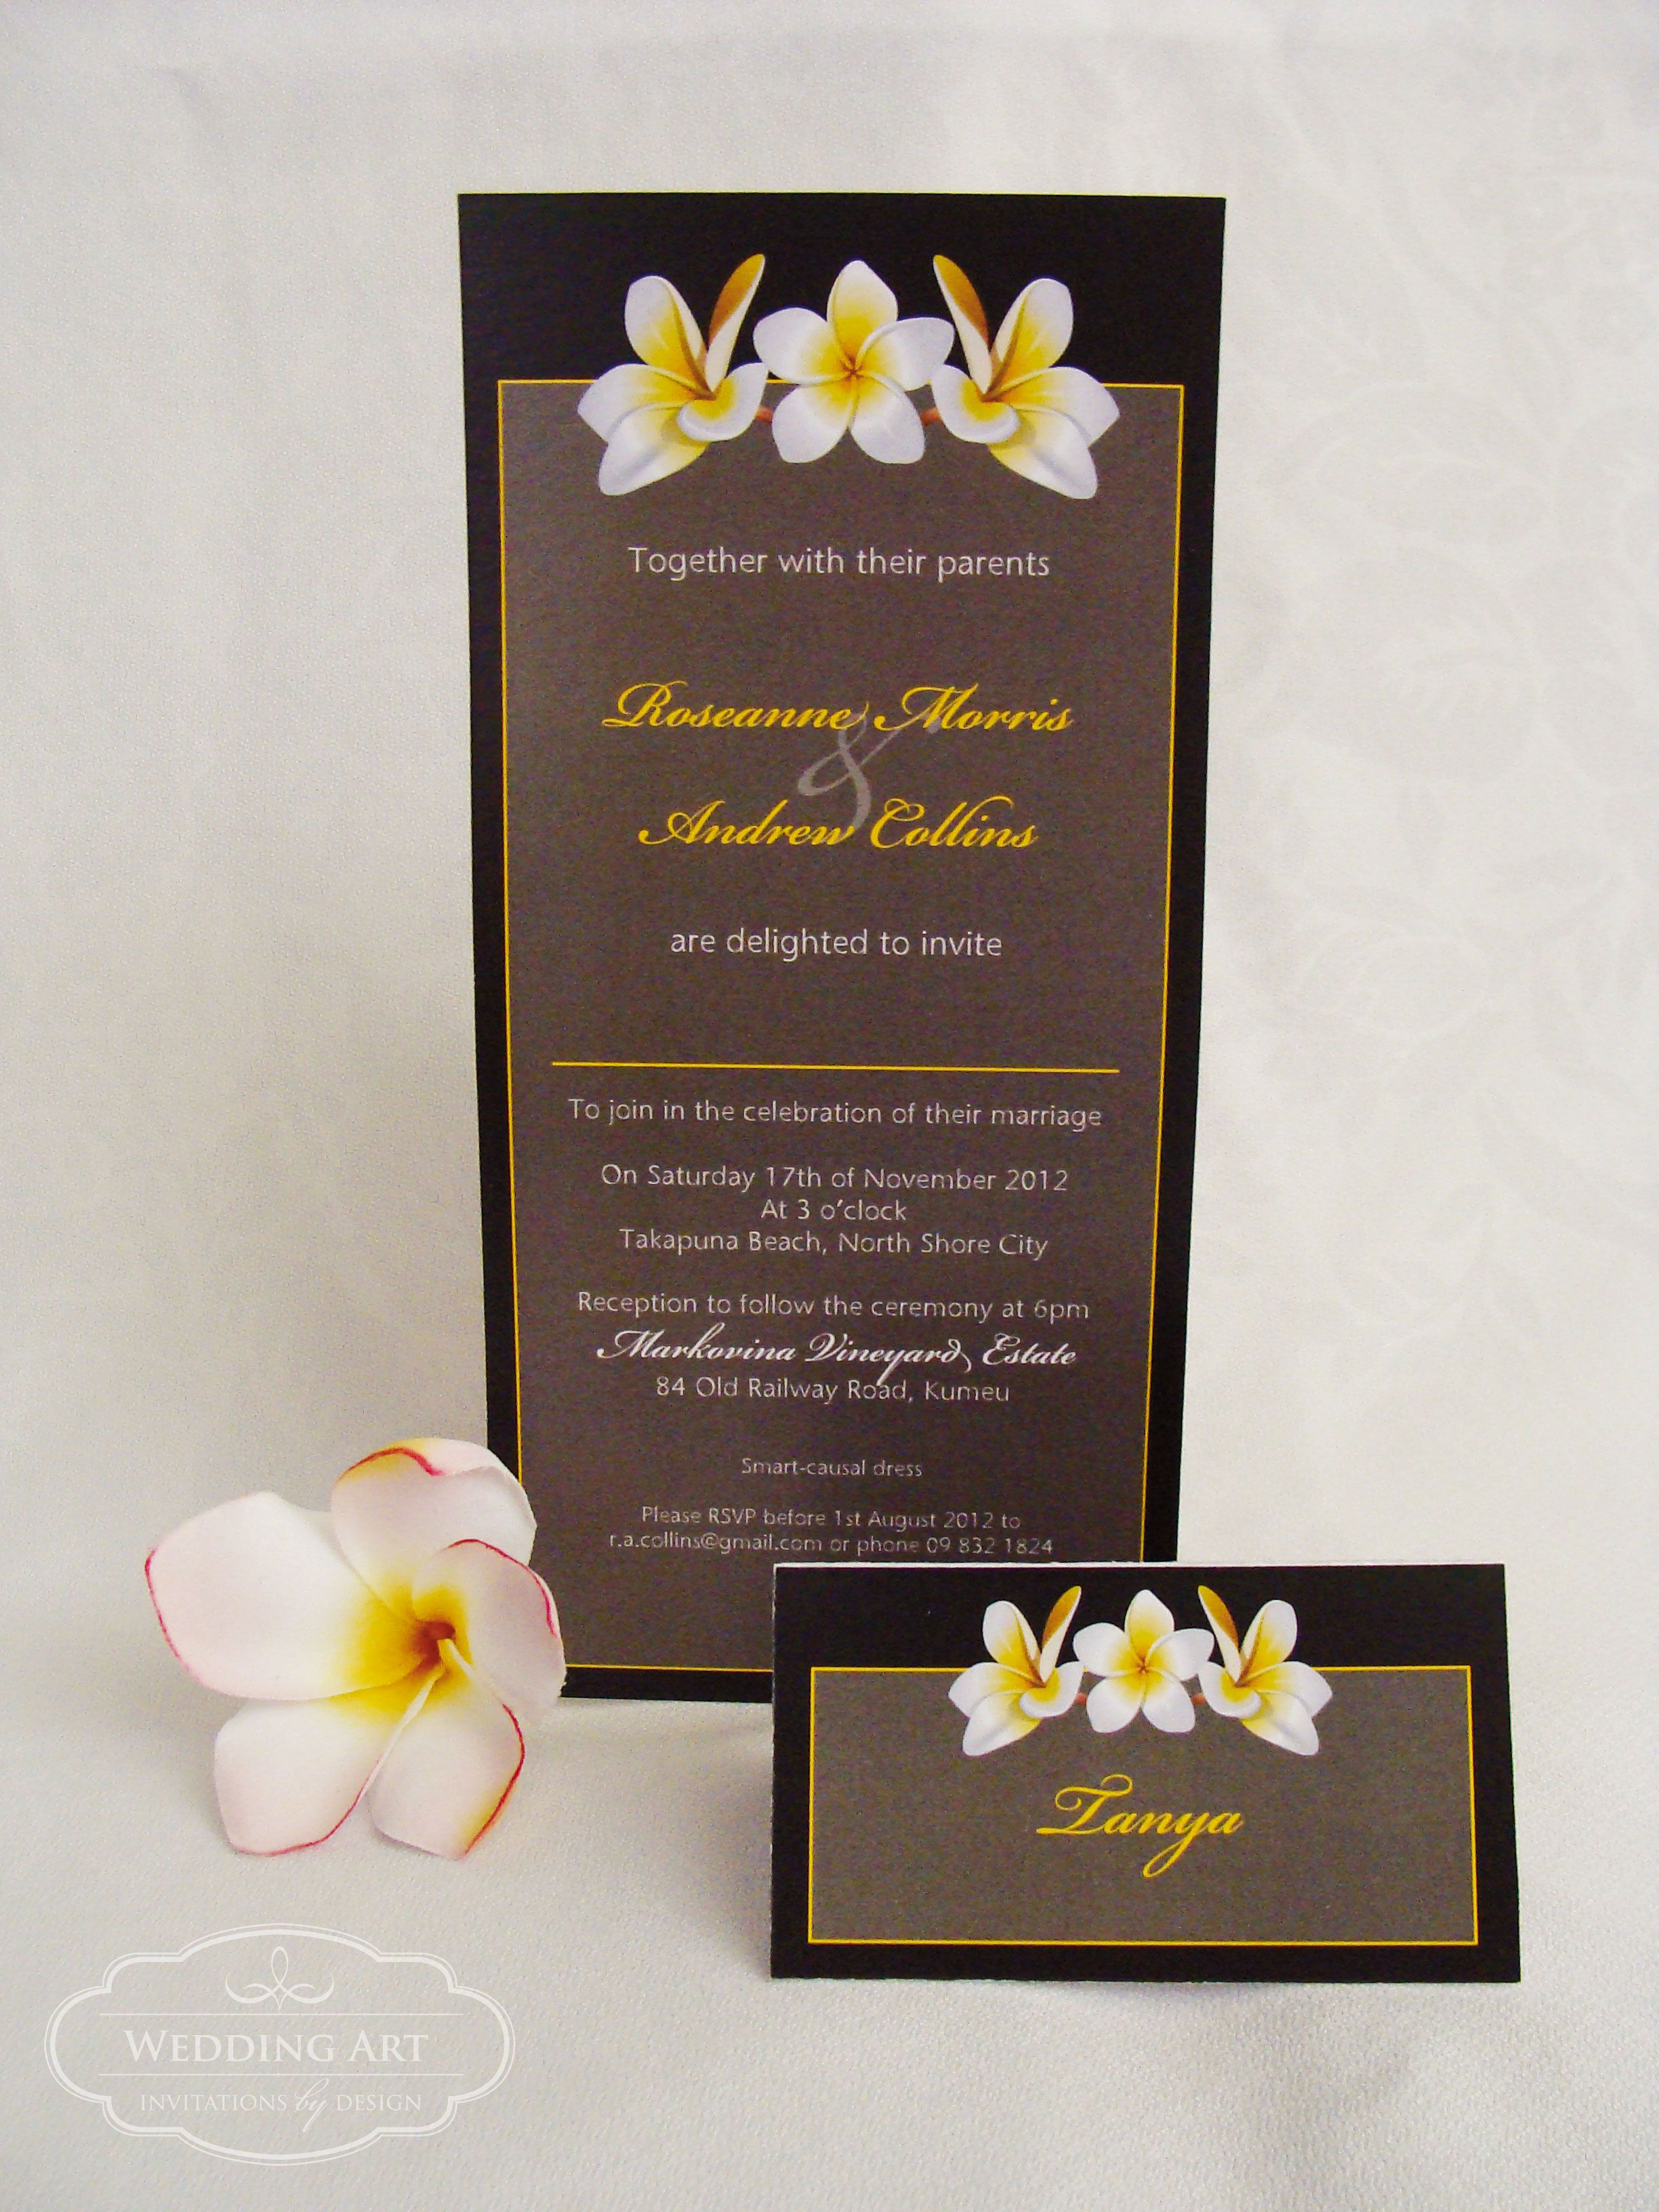 wedding renewal invitation ideas%0A Frangipani Wedding invitation and matching Frangipani Placename card   www weddingart co nz